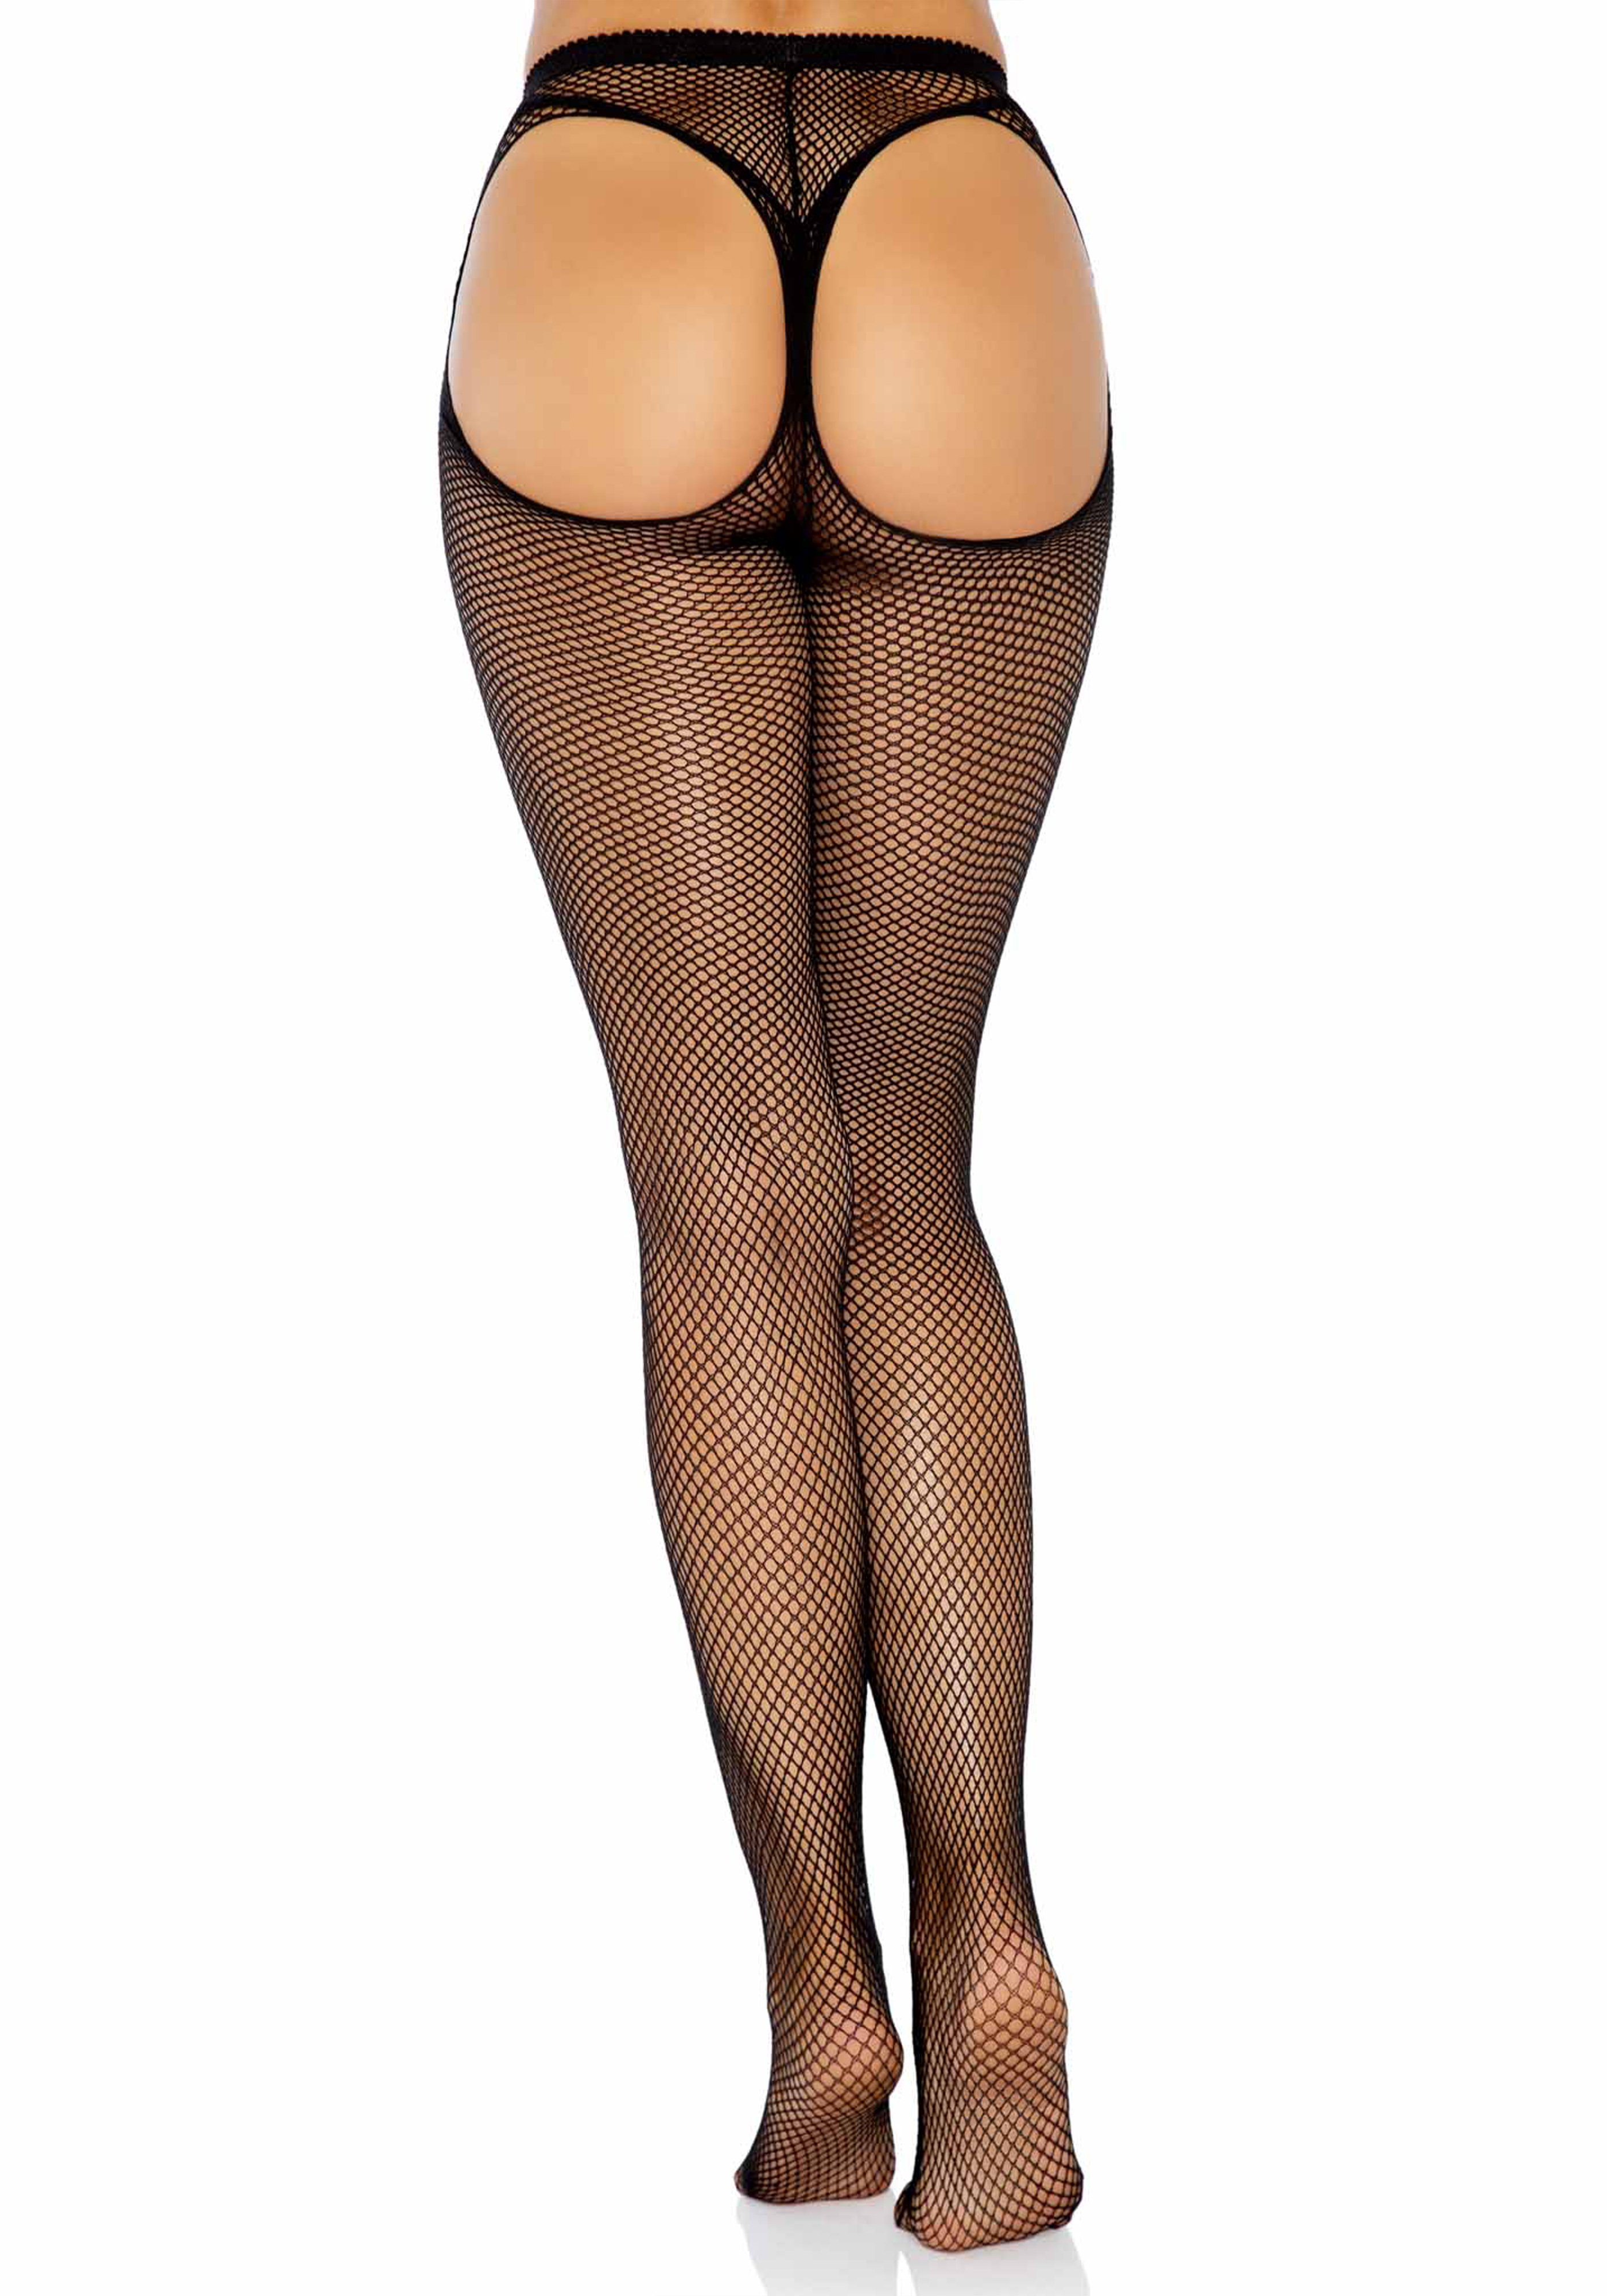 Thong Back Fishnet Pantyhose